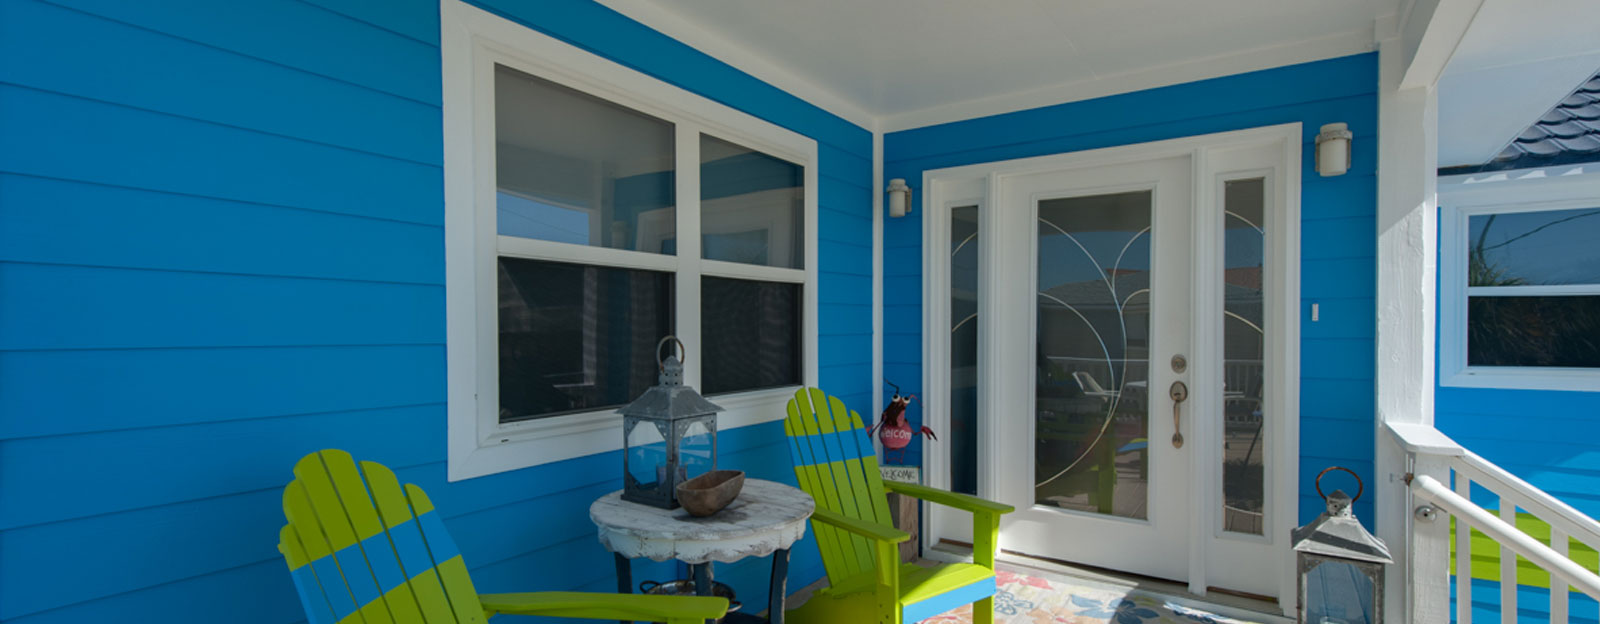 Blue Wall -Paradise Coastal Realty